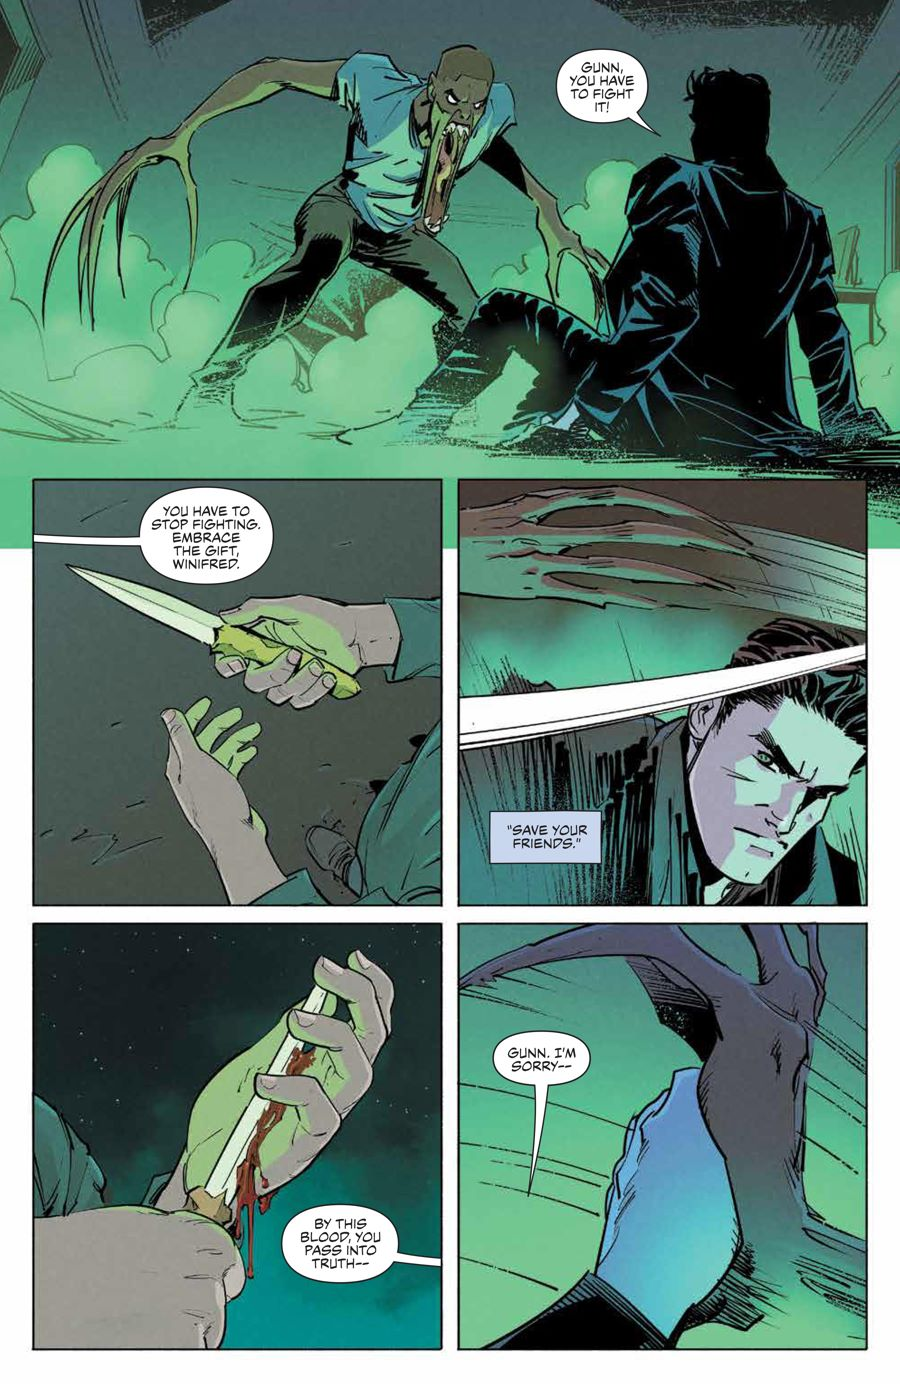 Angel_012_PRESS_7 ComicList Previews: ANGEL AND SPIKE #12